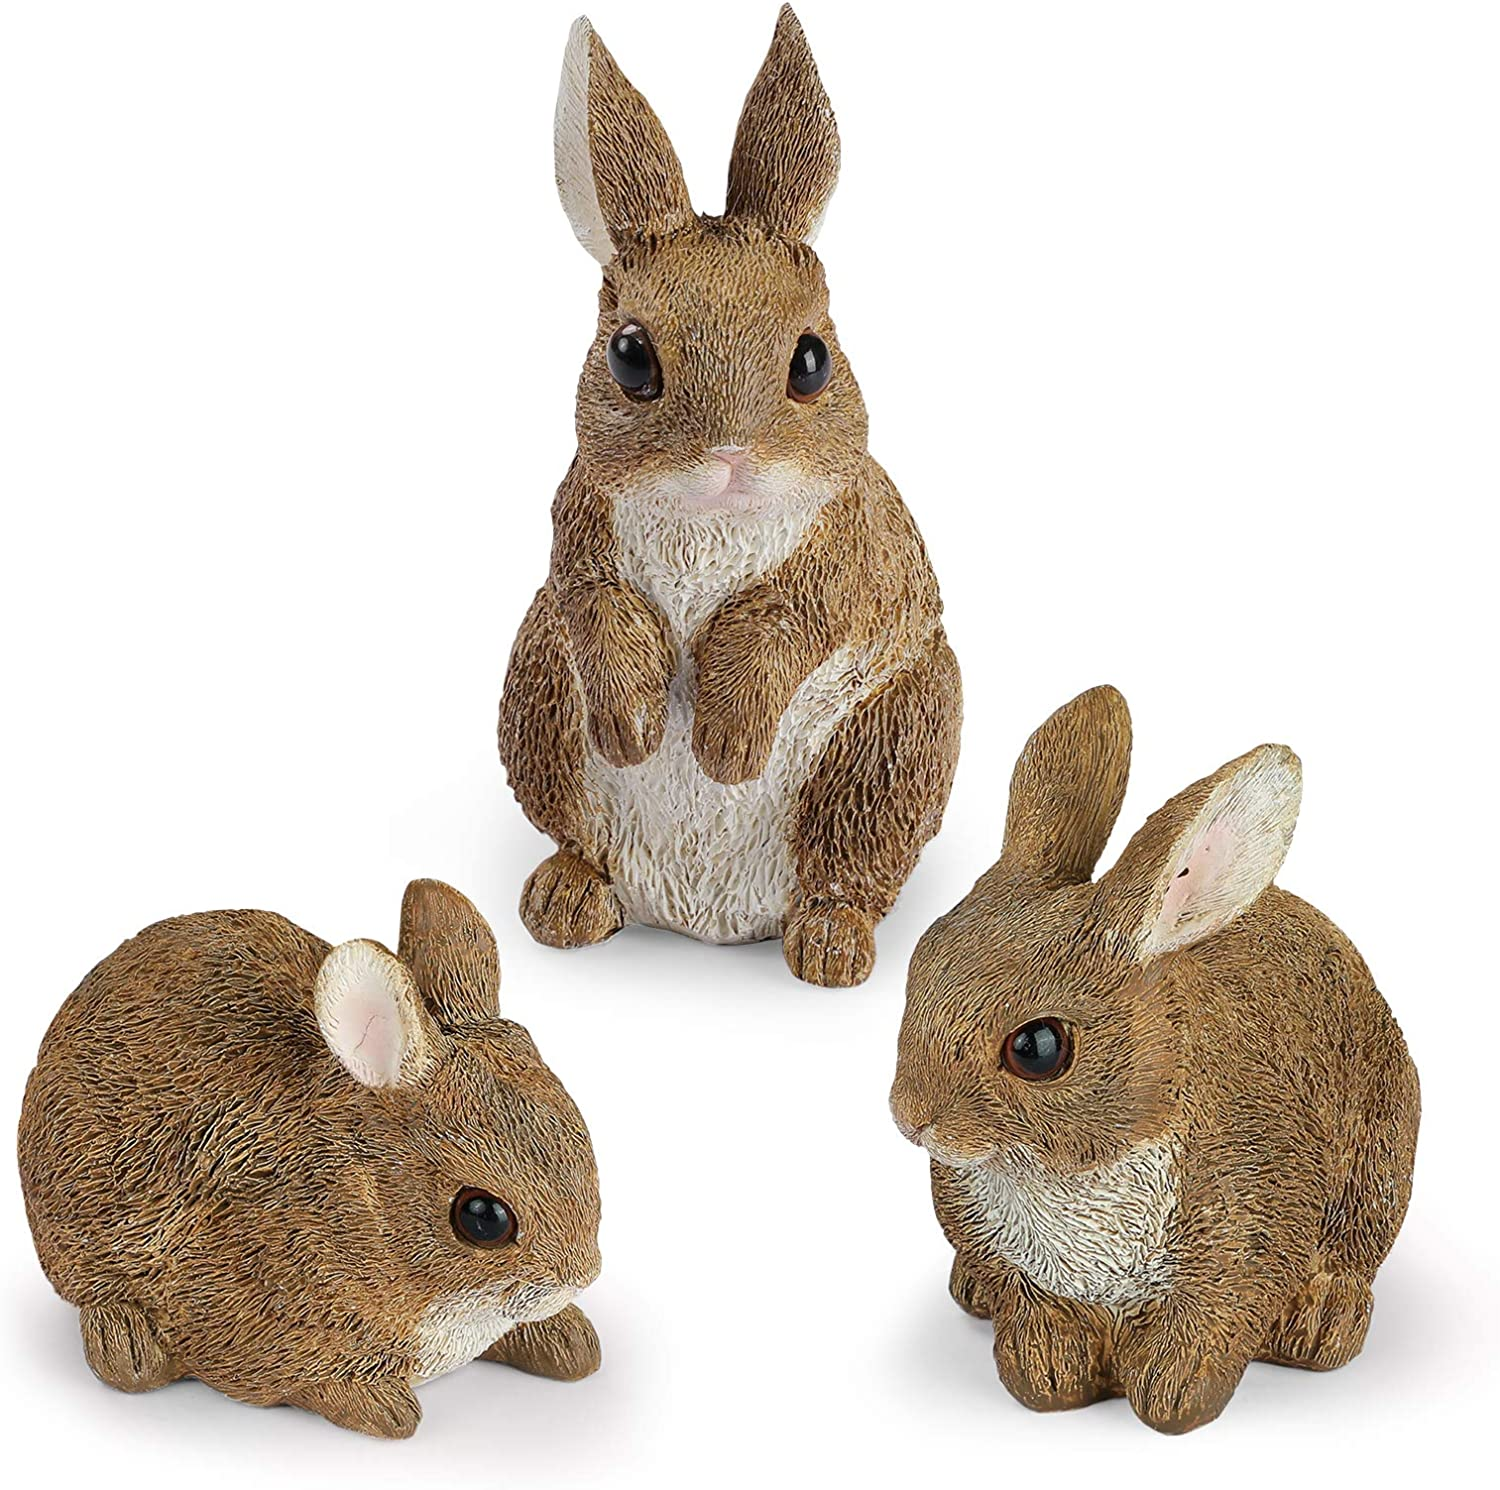 Giftchy Bunny Garden Figurines Set of 3, Whimsical Rabbit Decorations for Outside, Resin Animals Statues, Spring Decor for Home, Dark Brown Finish 5.375